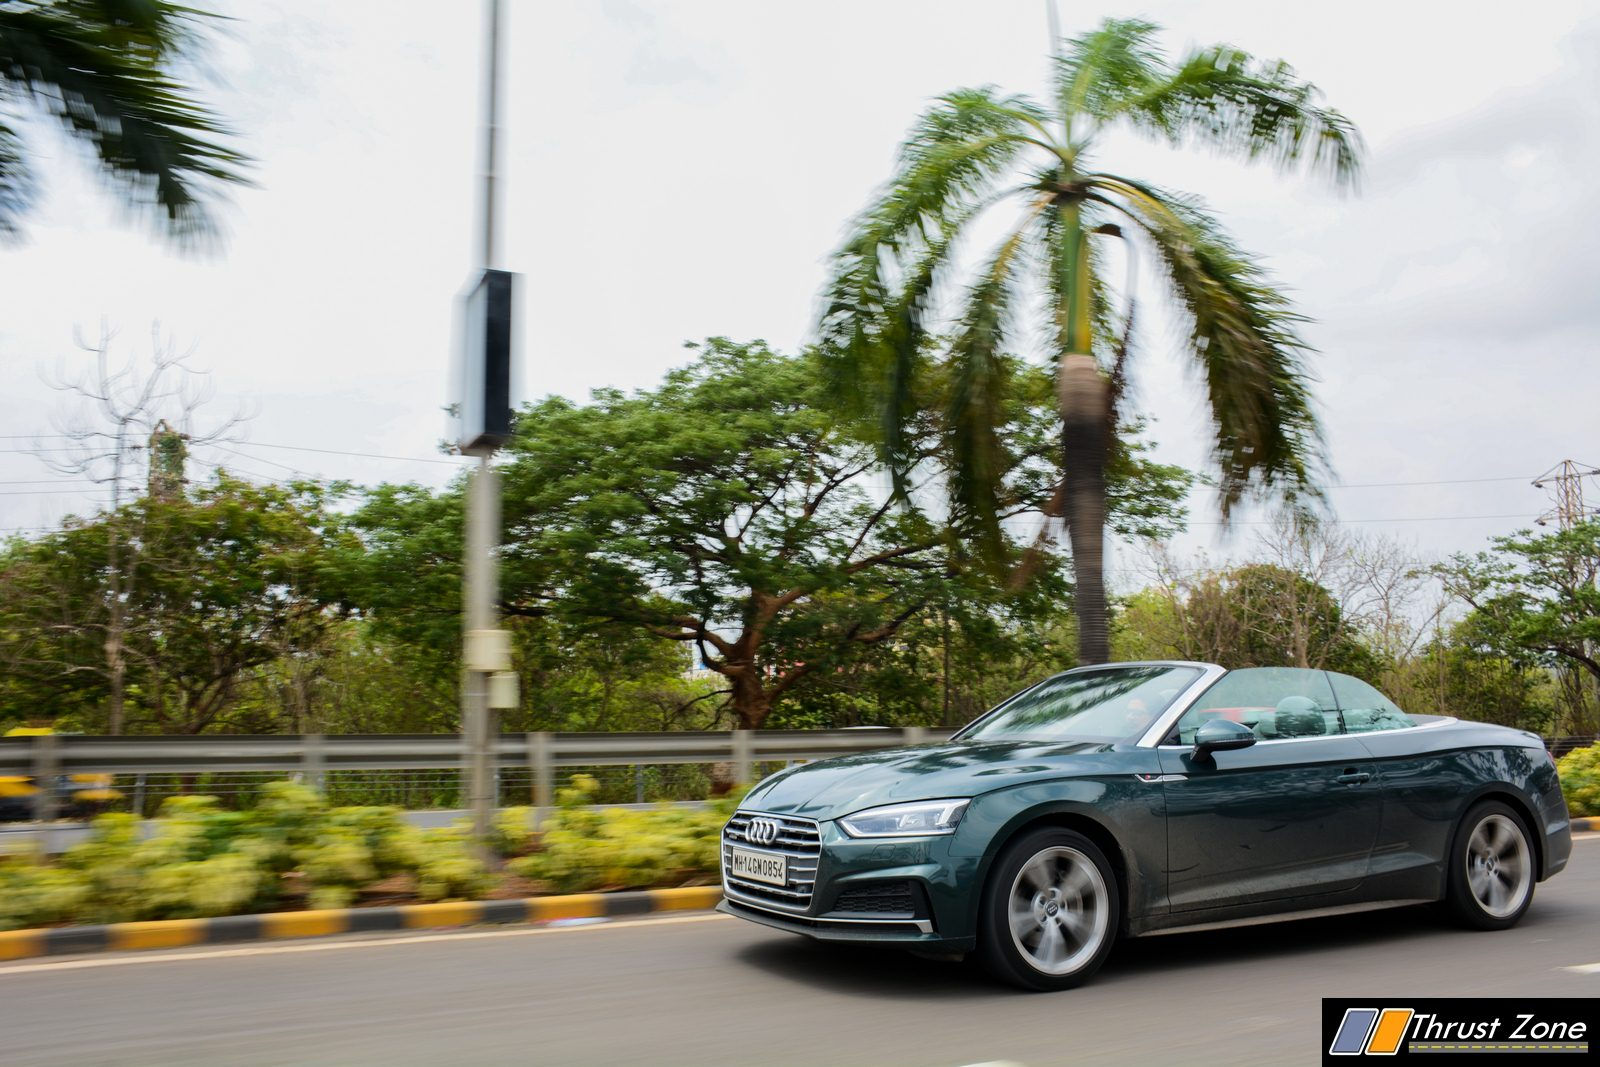 https://www.thrustzone.com/wp-content/uploads/2019/06/2019-Audi-A5-Cabriolet-Convertible-India-Diesel-Review-1.jpg